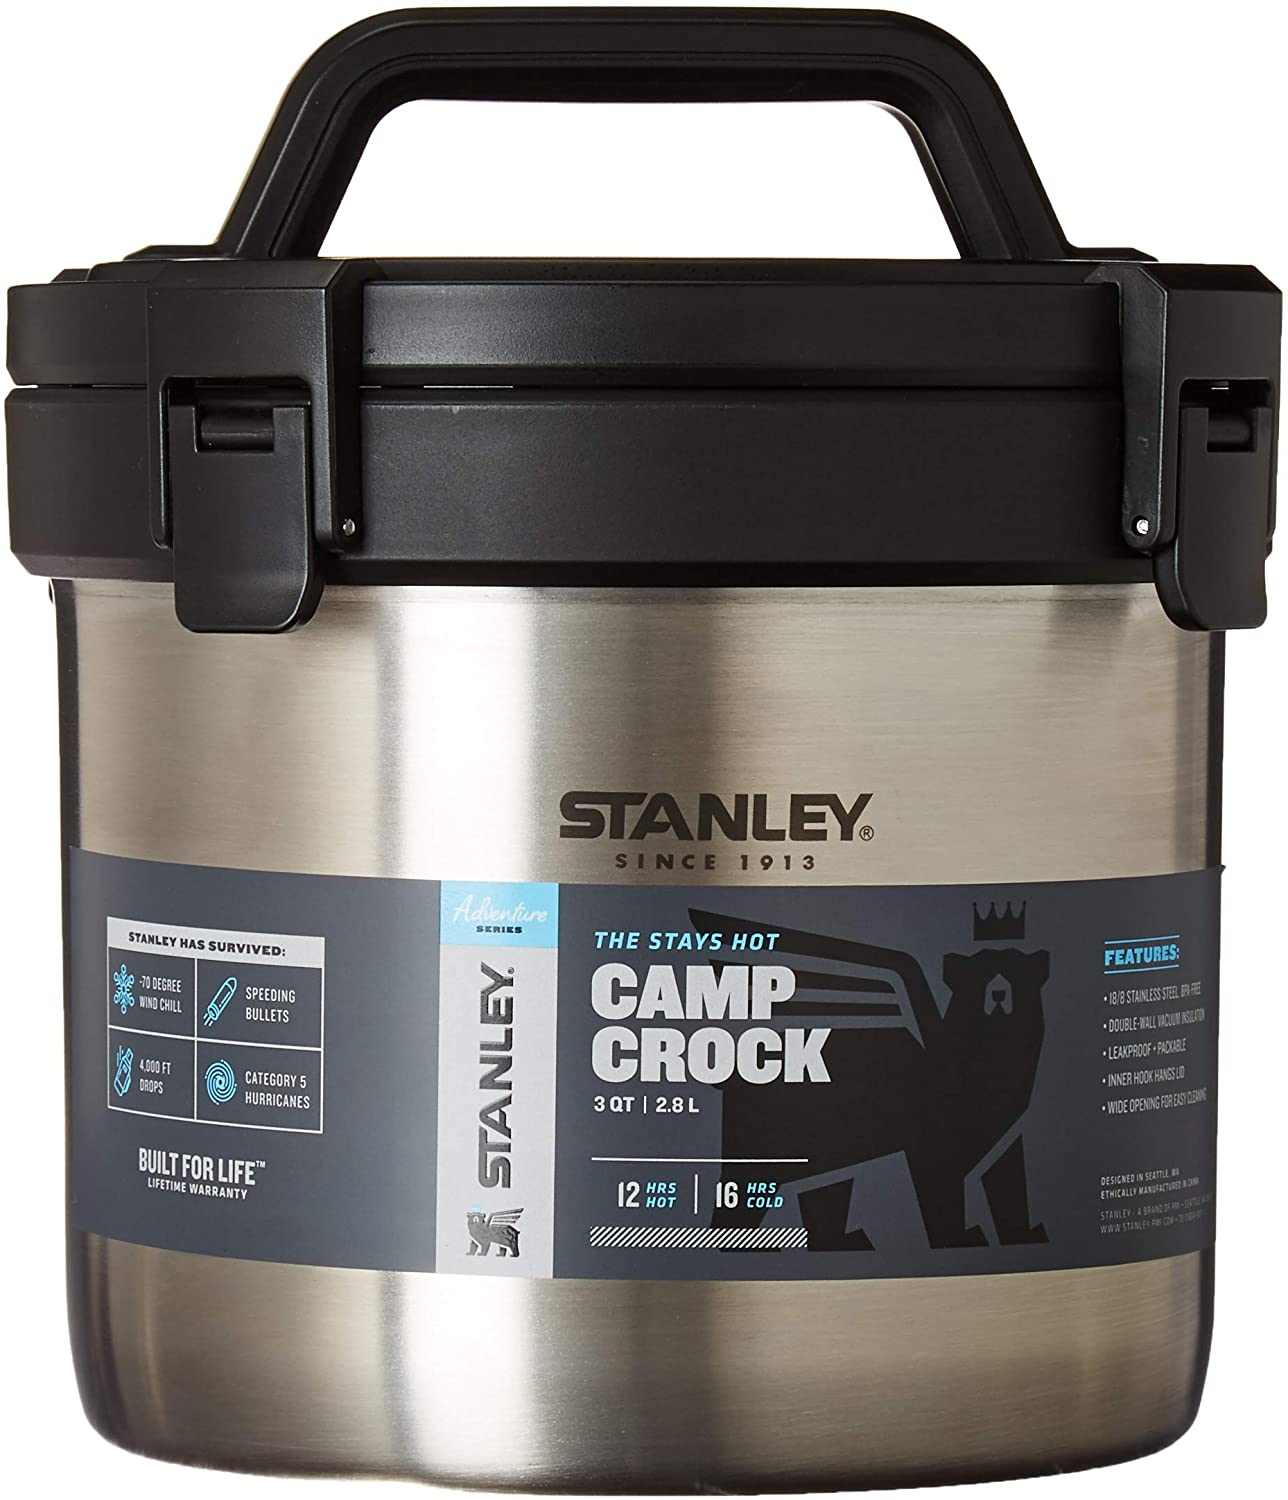 Stanley Large-scale sale Adventure Stay Hot San Francisco Mall 3QT Camp Sta Vacuum - Insulated Crock